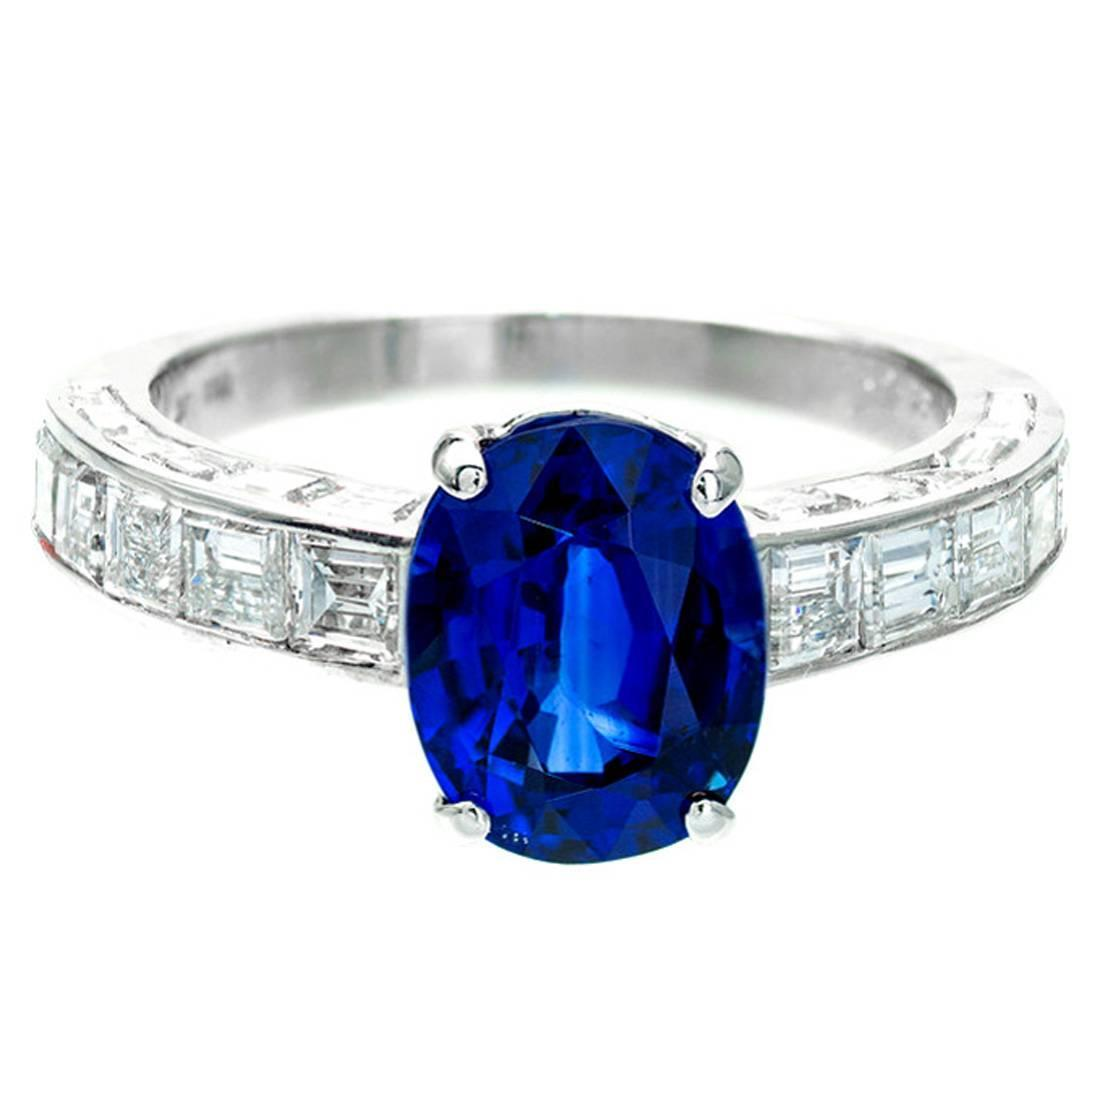 tanary gold oval micropave sapphire micropav rings product floating add in and to ring diamond wishlist white